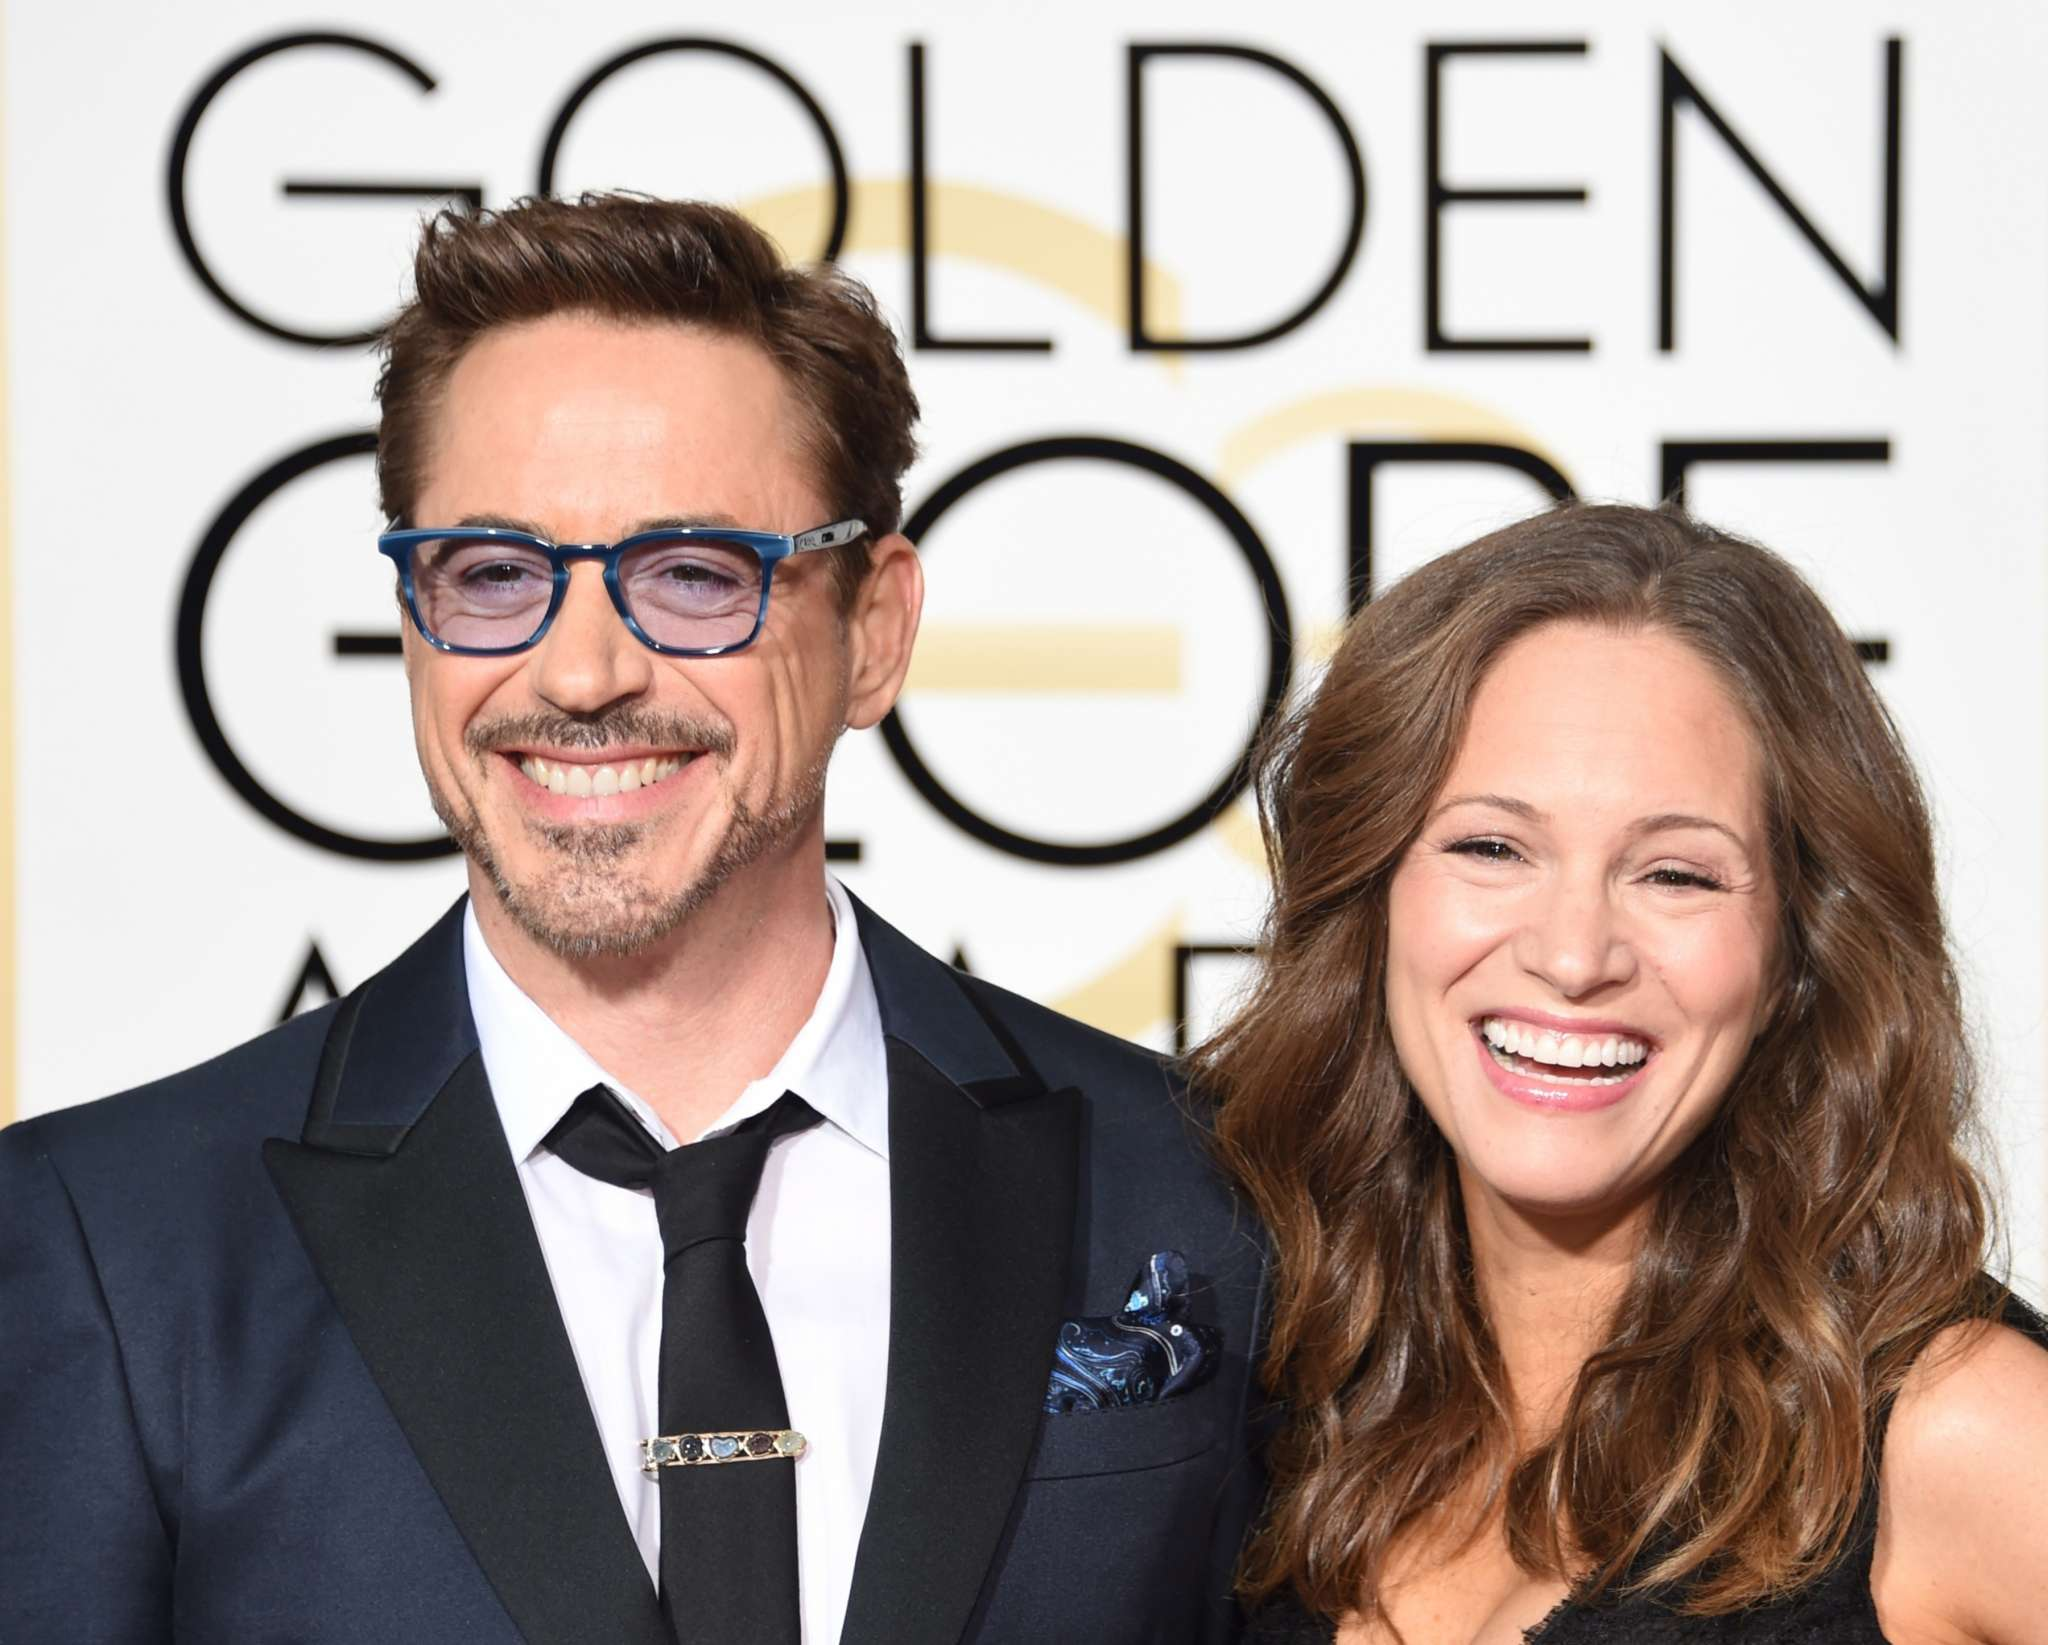 robert-downey-jr-s-wife-susan-proud-of-how-he-turned-his-life-around-amid-record-breaking-avengers-endgame-opening-weekend